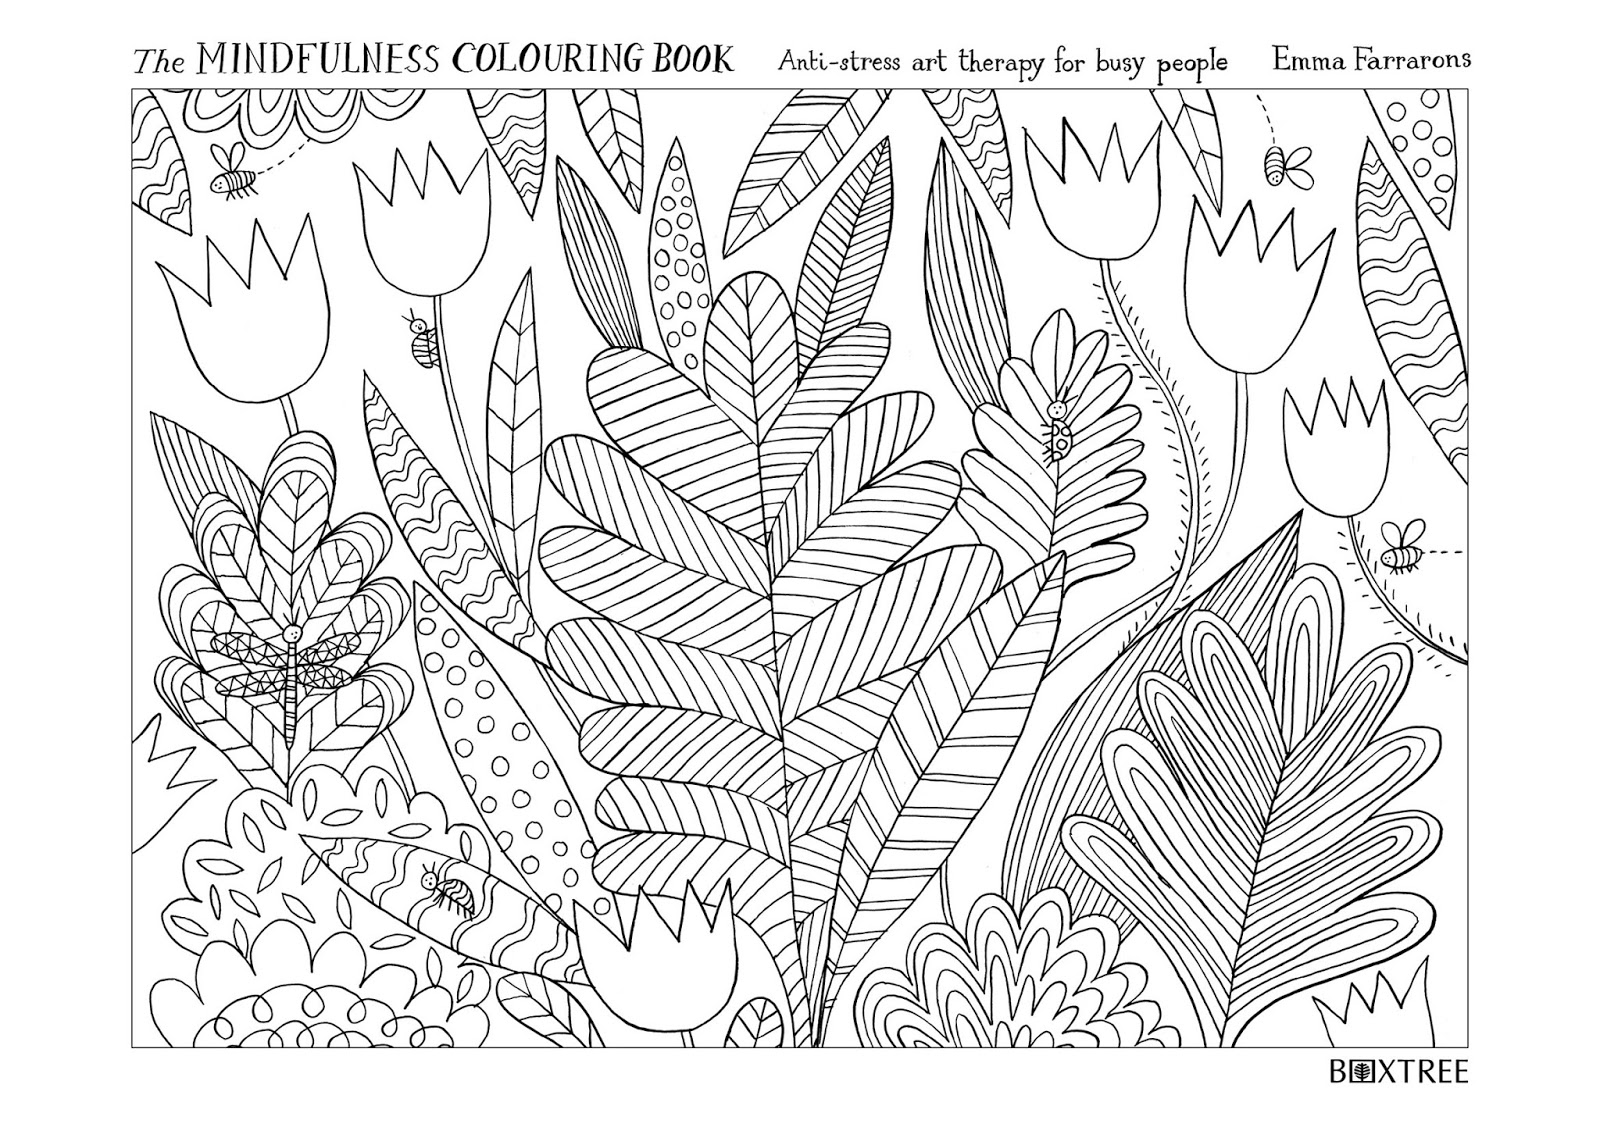 From Emma Farrarons Mindfullness Coloring Book Sample Jpg